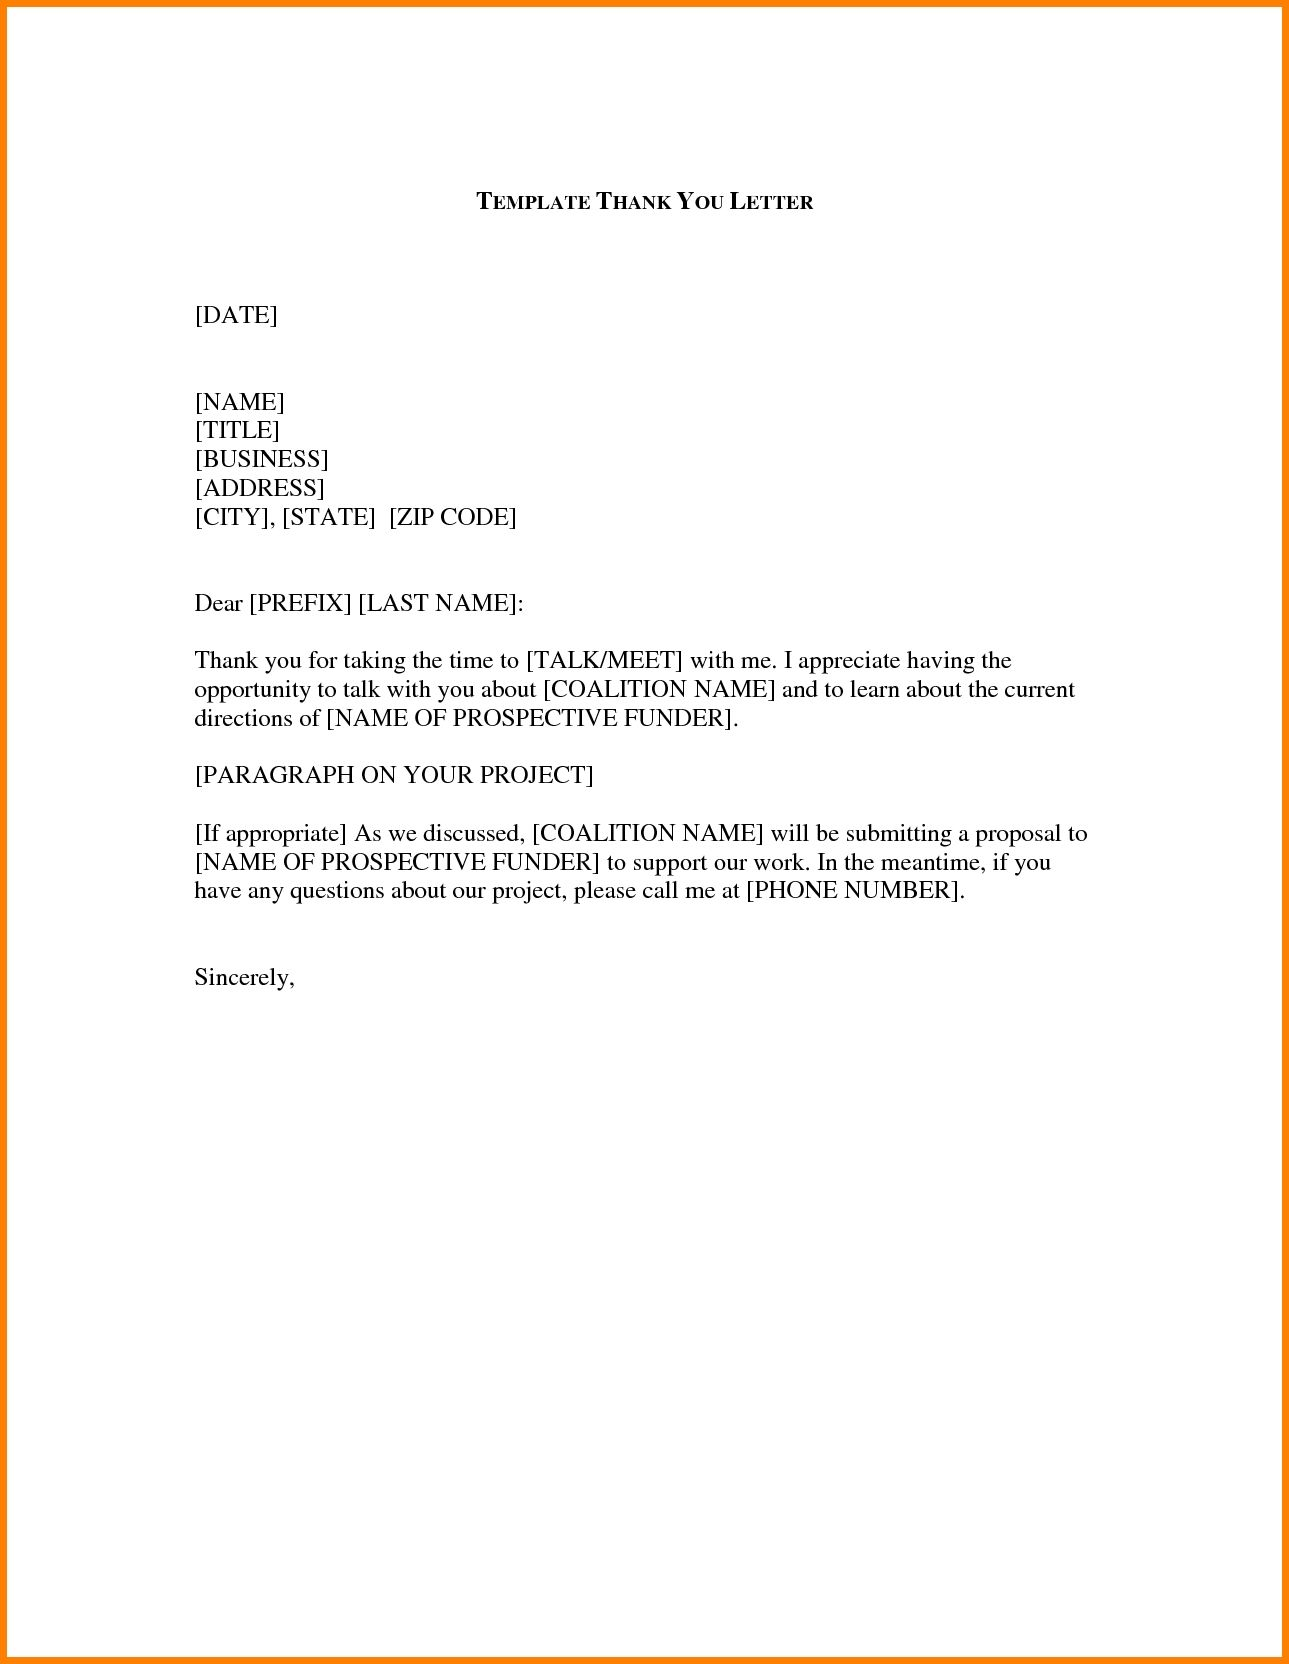 Charity Care Approval Letter Letterhead Legal Requirements